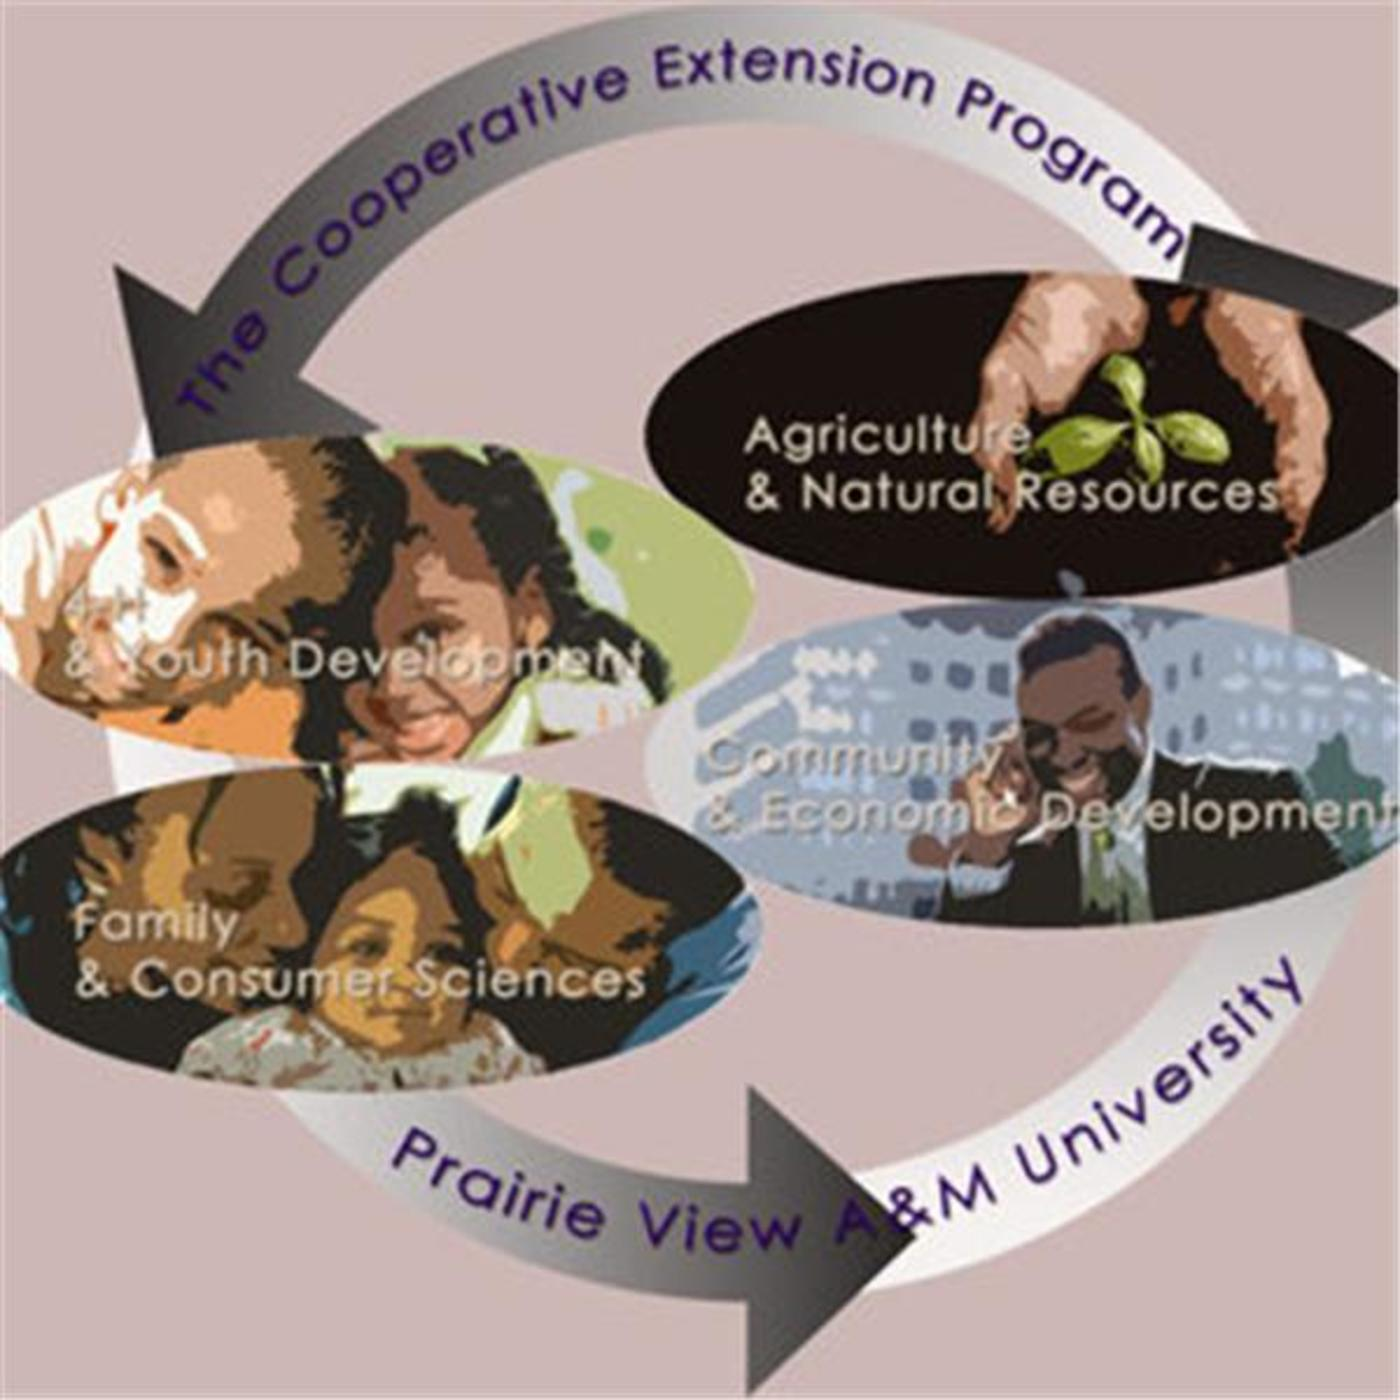 PV Cooperative Extension